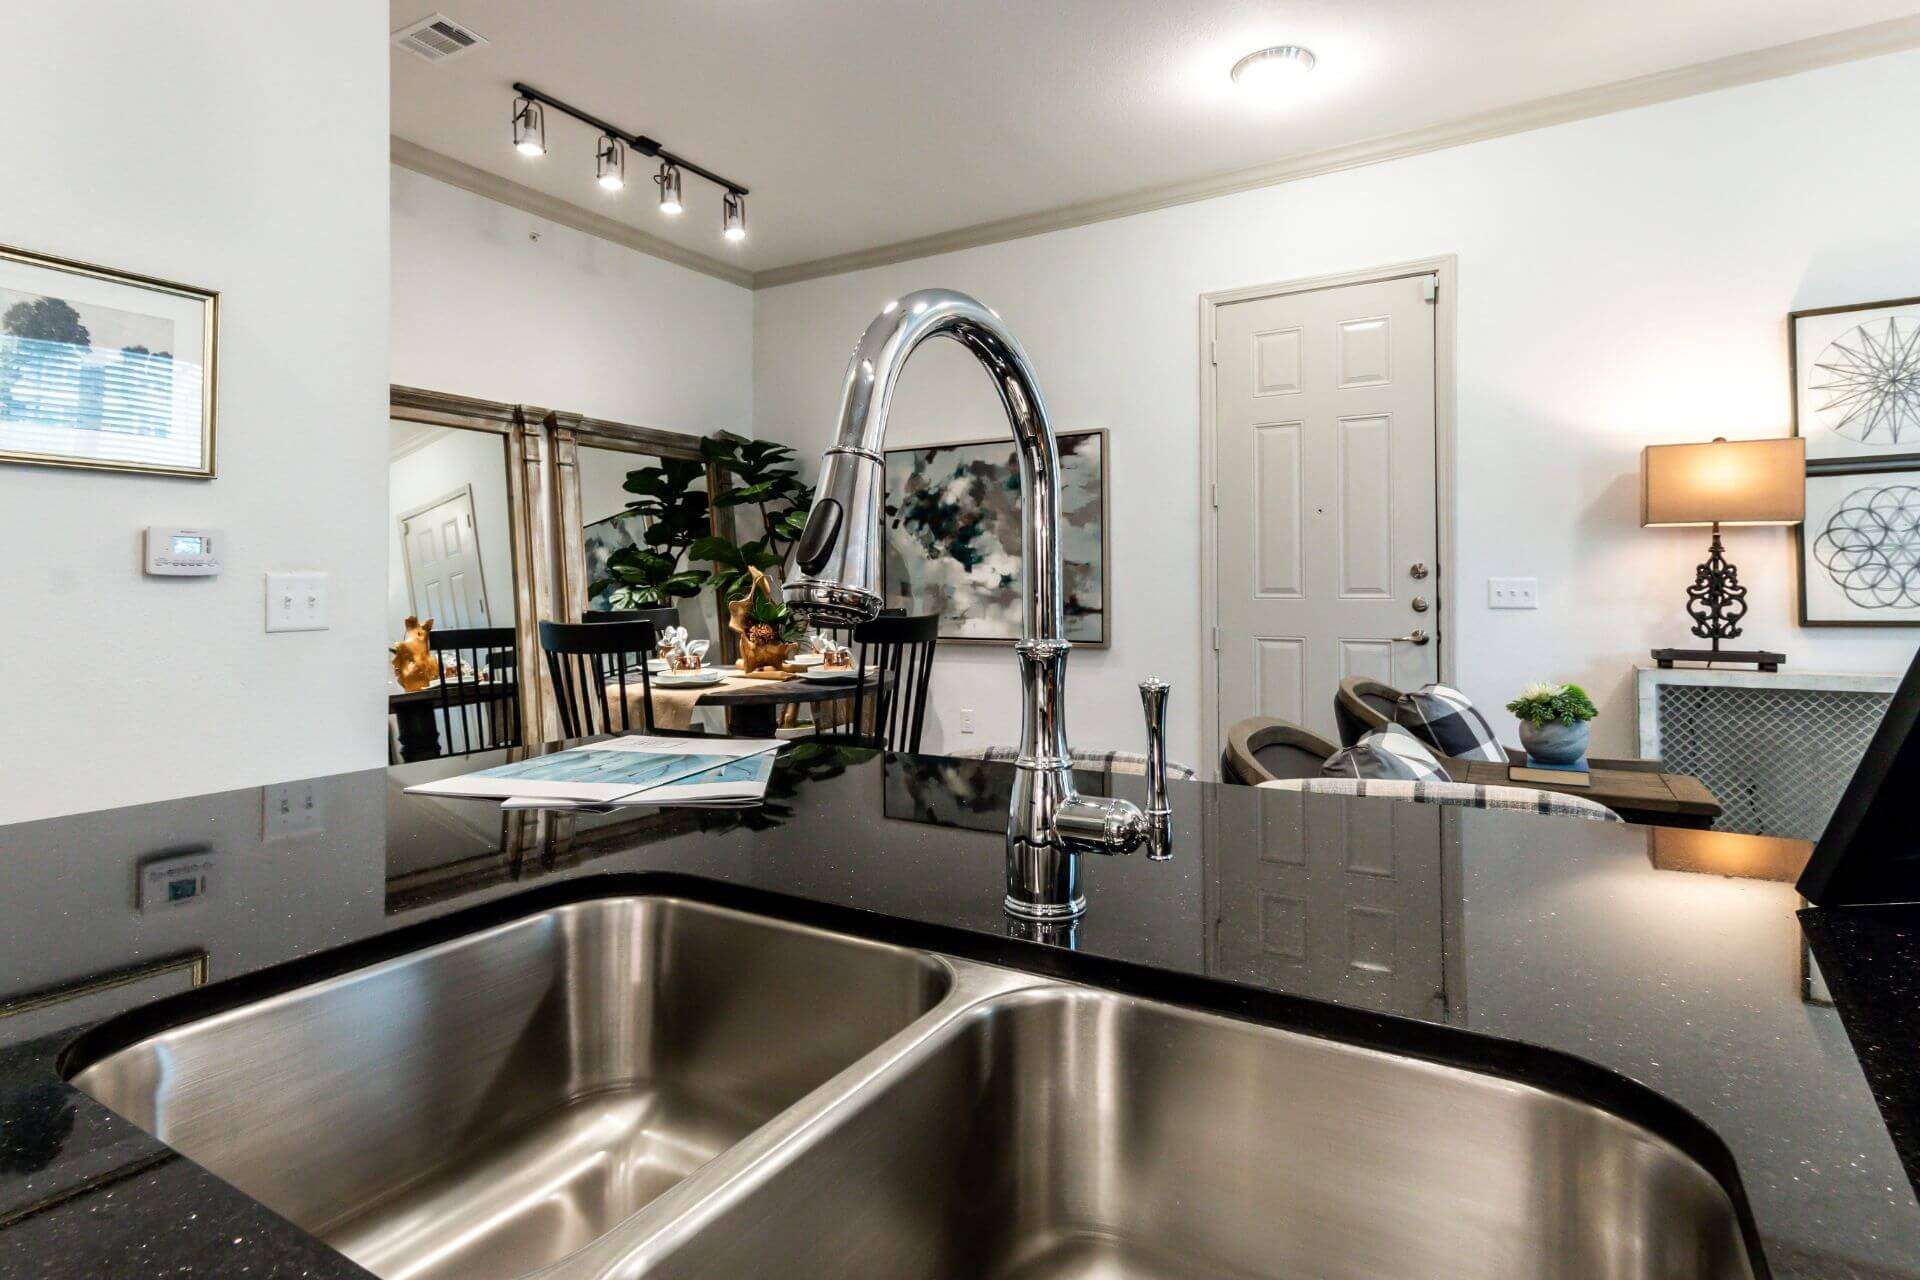 Stainless Steel Sink With Faucet at Berkshire Creekside, New Braunfels, Texas